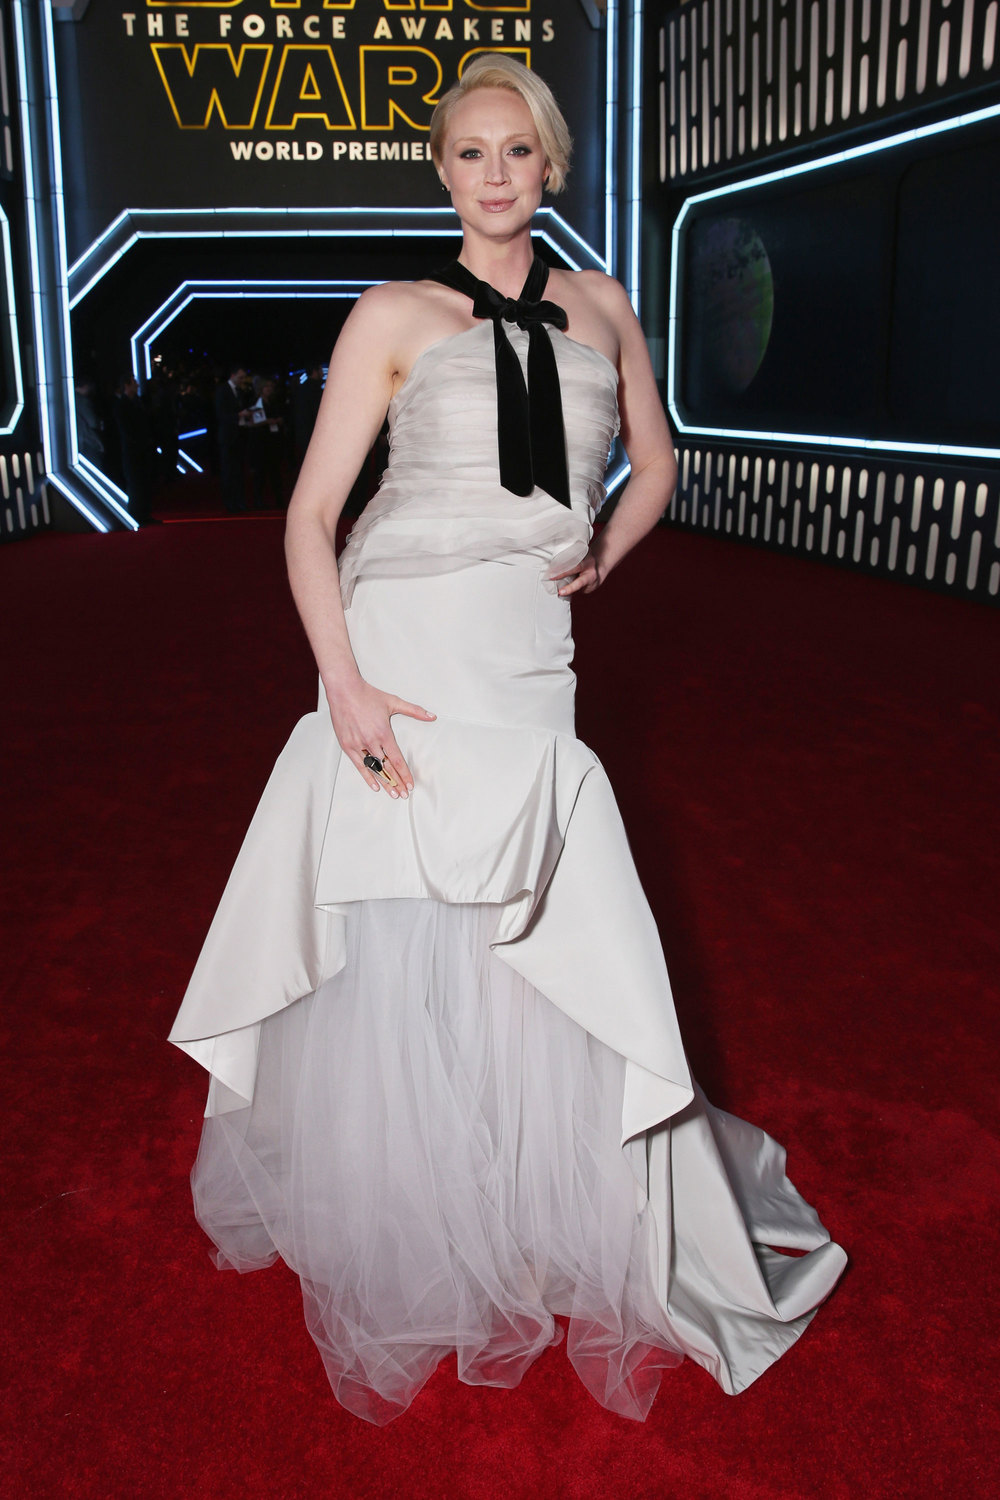 gwendoline-christie-star-wars-premiere-dress-oscar-de-la-renta-los-angeles.jpg